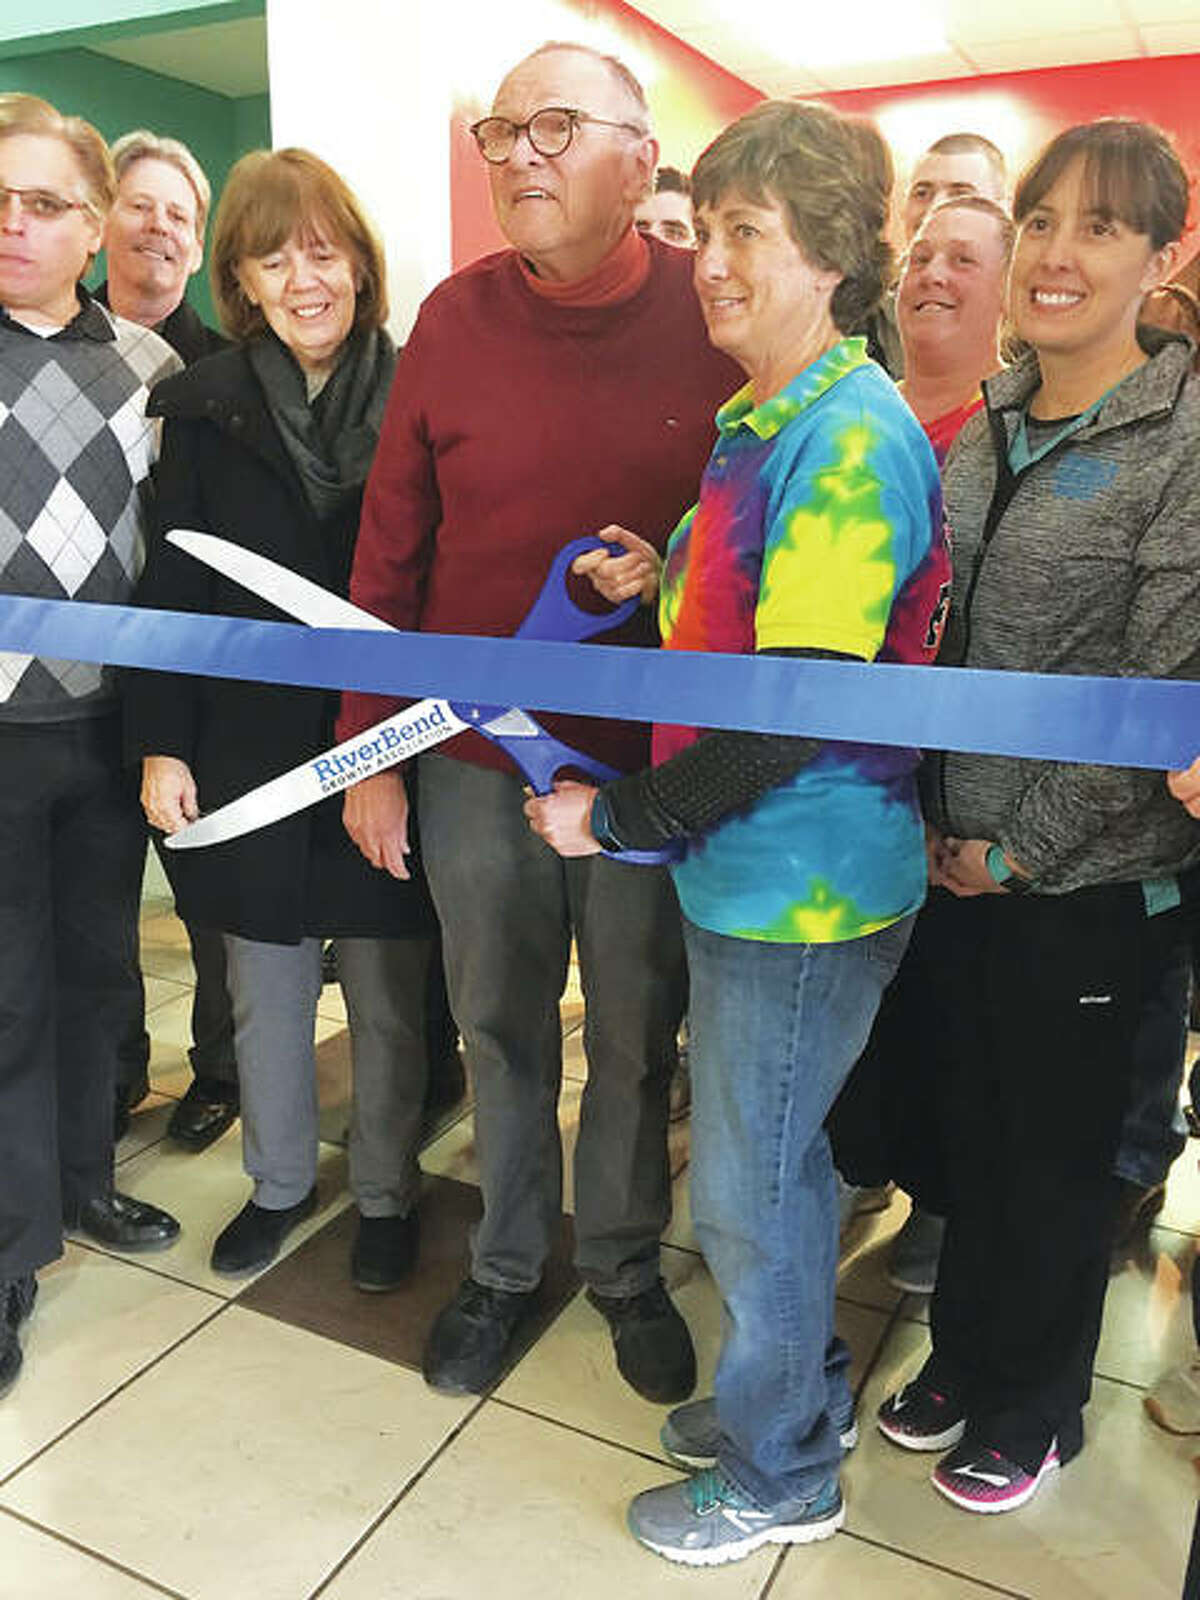 Alton Mayor Brant Walker, far left, and Godfrey Mayor Mike McCormick standing next to his wife, Linda McCormick, holding giant scissors, who is the owner of the new Cookie Express store at Alton Square Mall, located in the lower level.